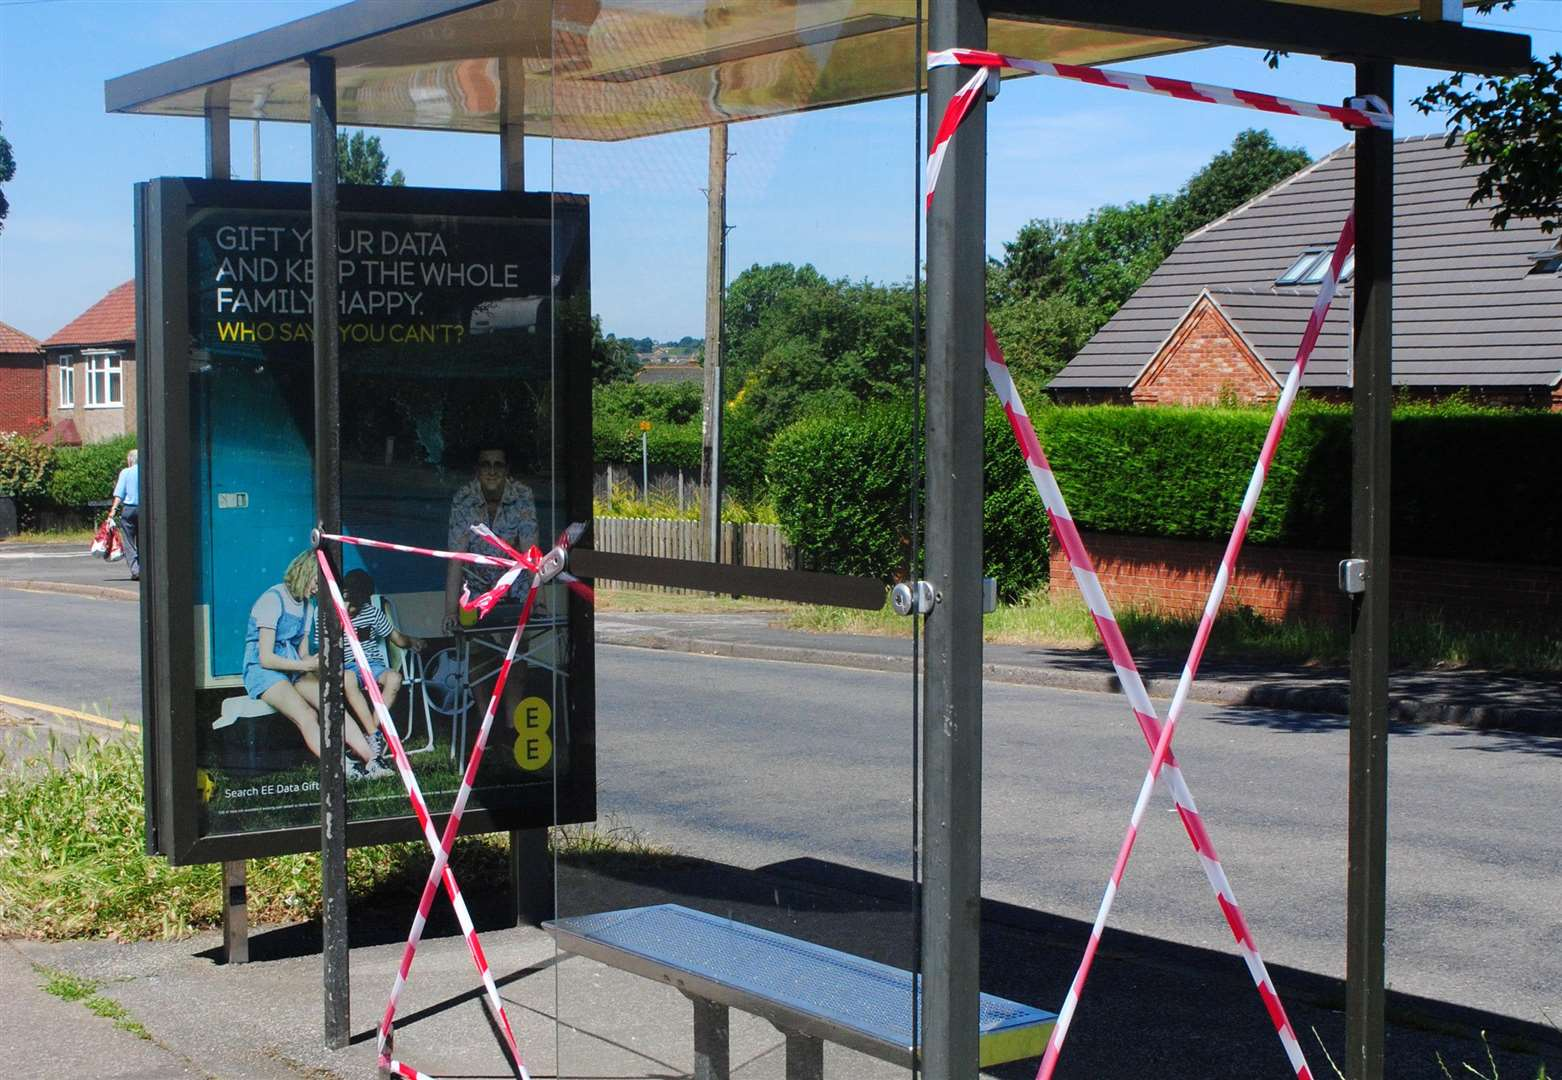 Vandals target two bus shelters on same road